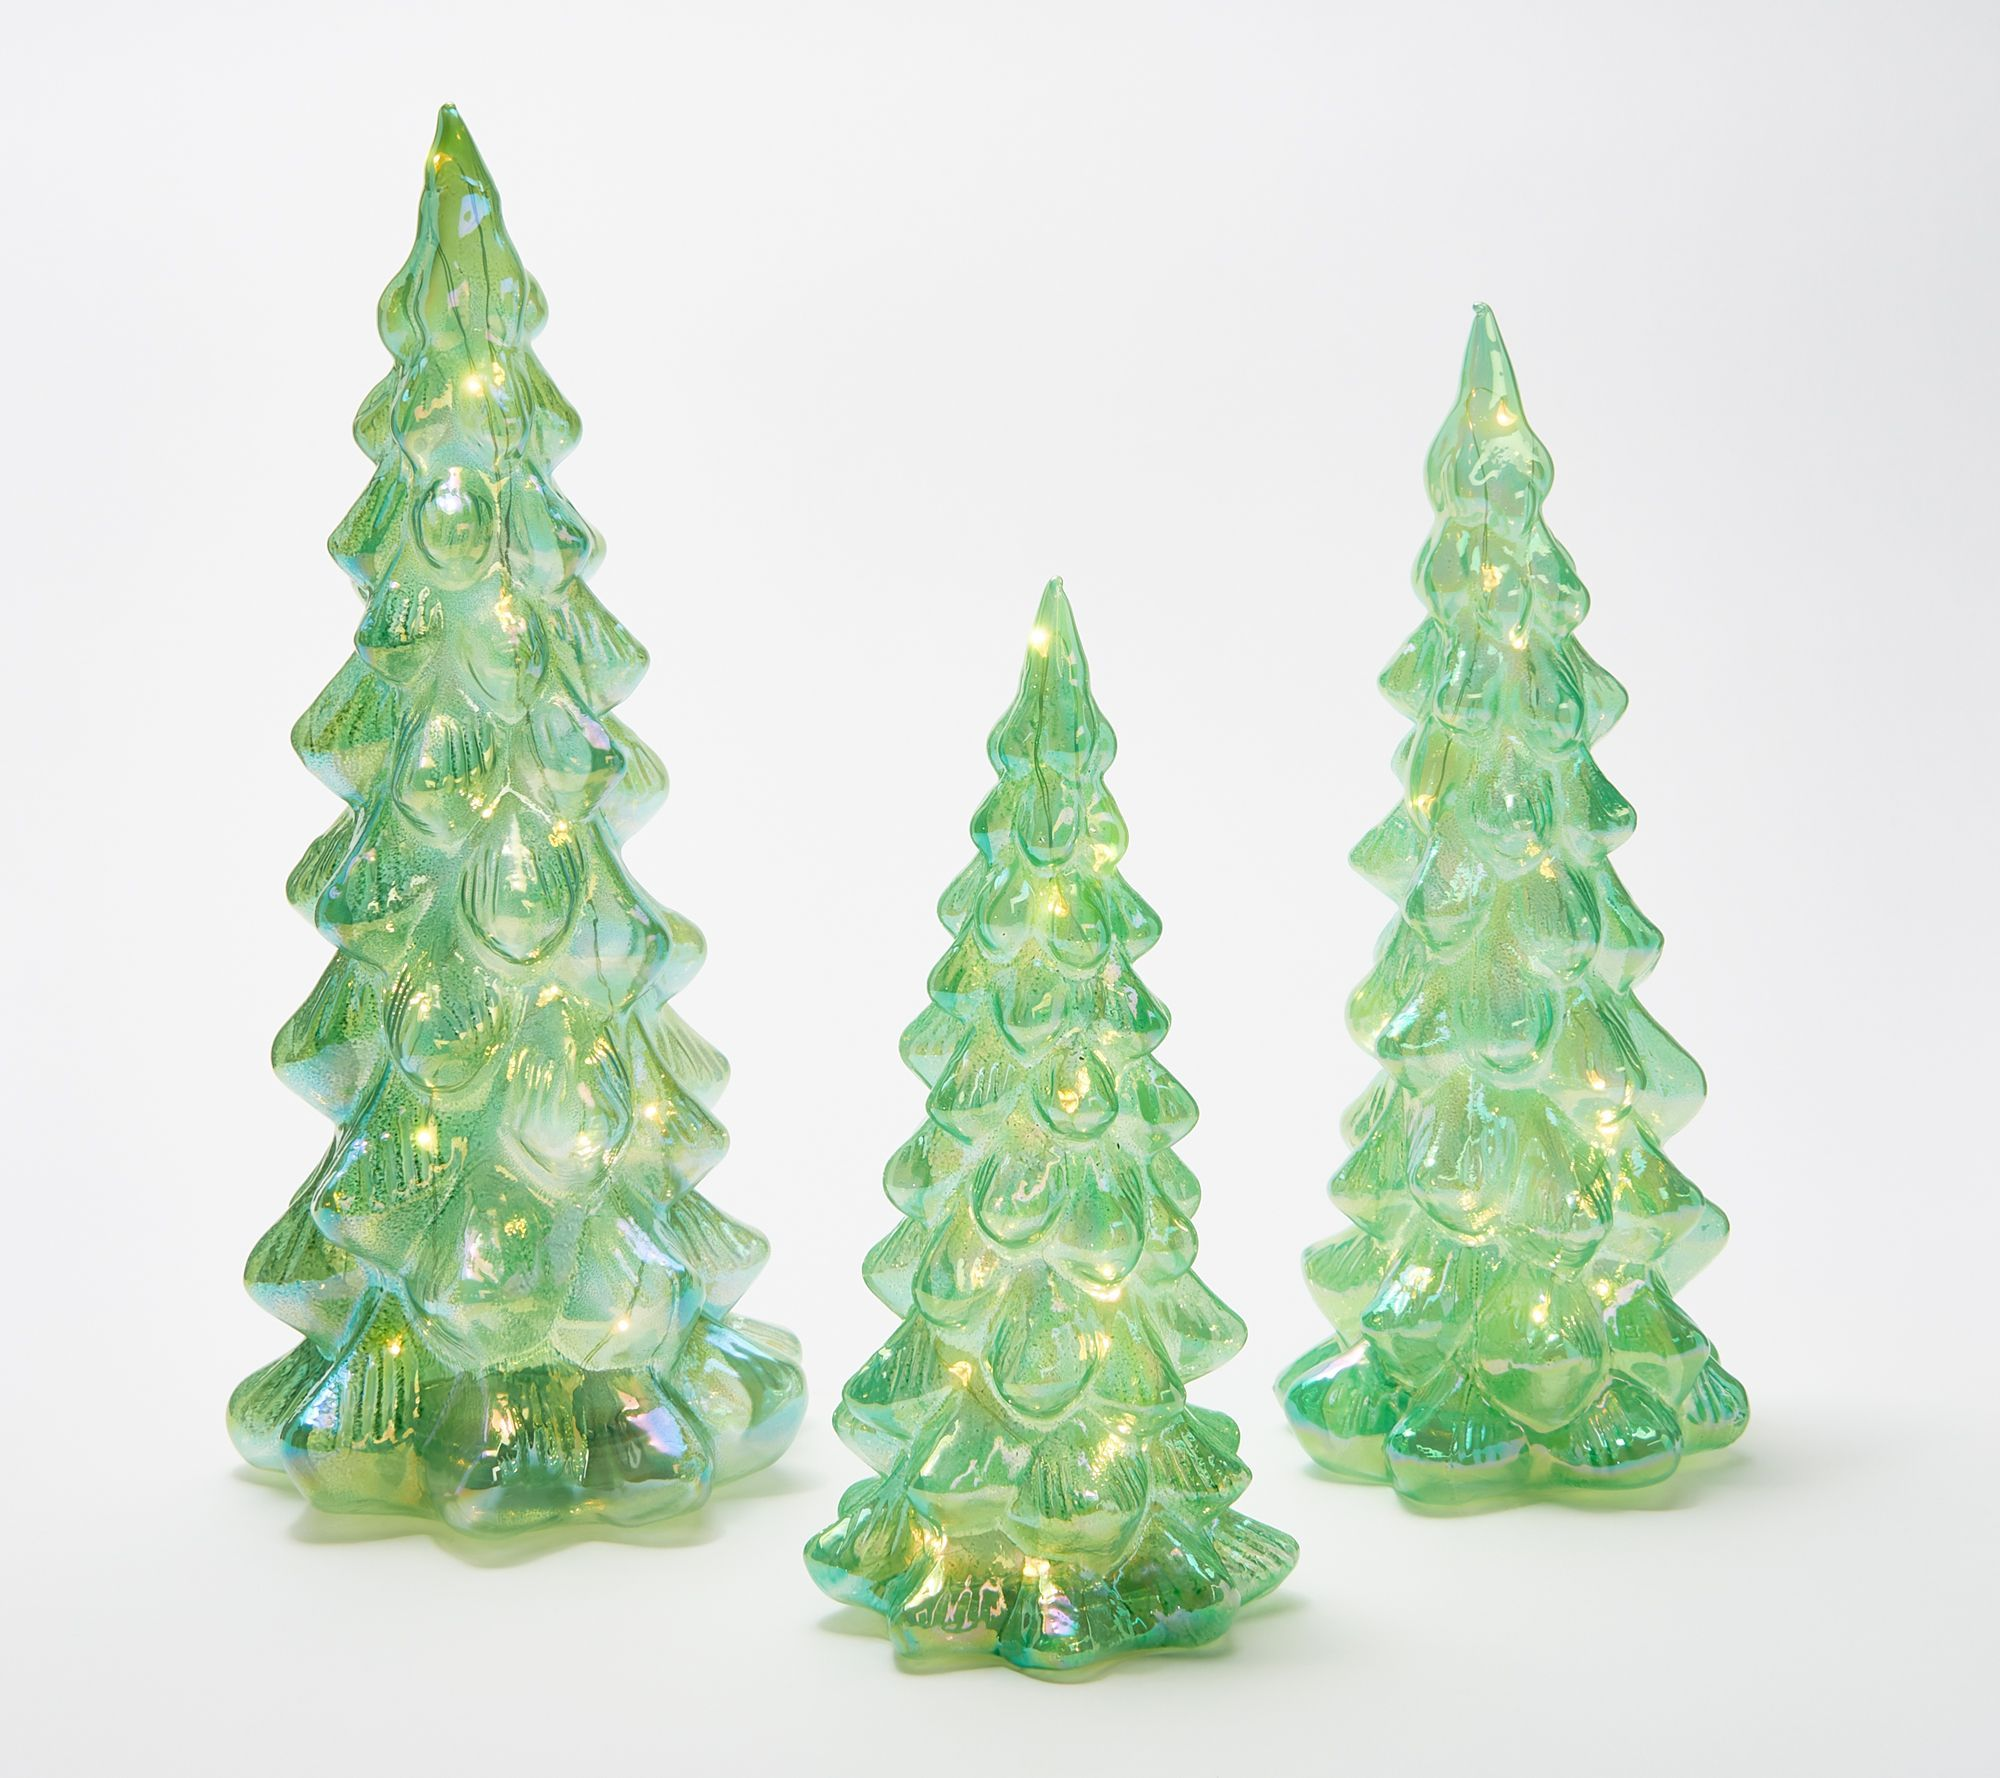 Set Of 3 Illuminated Iridescent Glass Trees By Valerie Qvc Com Valerie Parr Hill Iridescent Glass Valerie Parr Hill Christmas